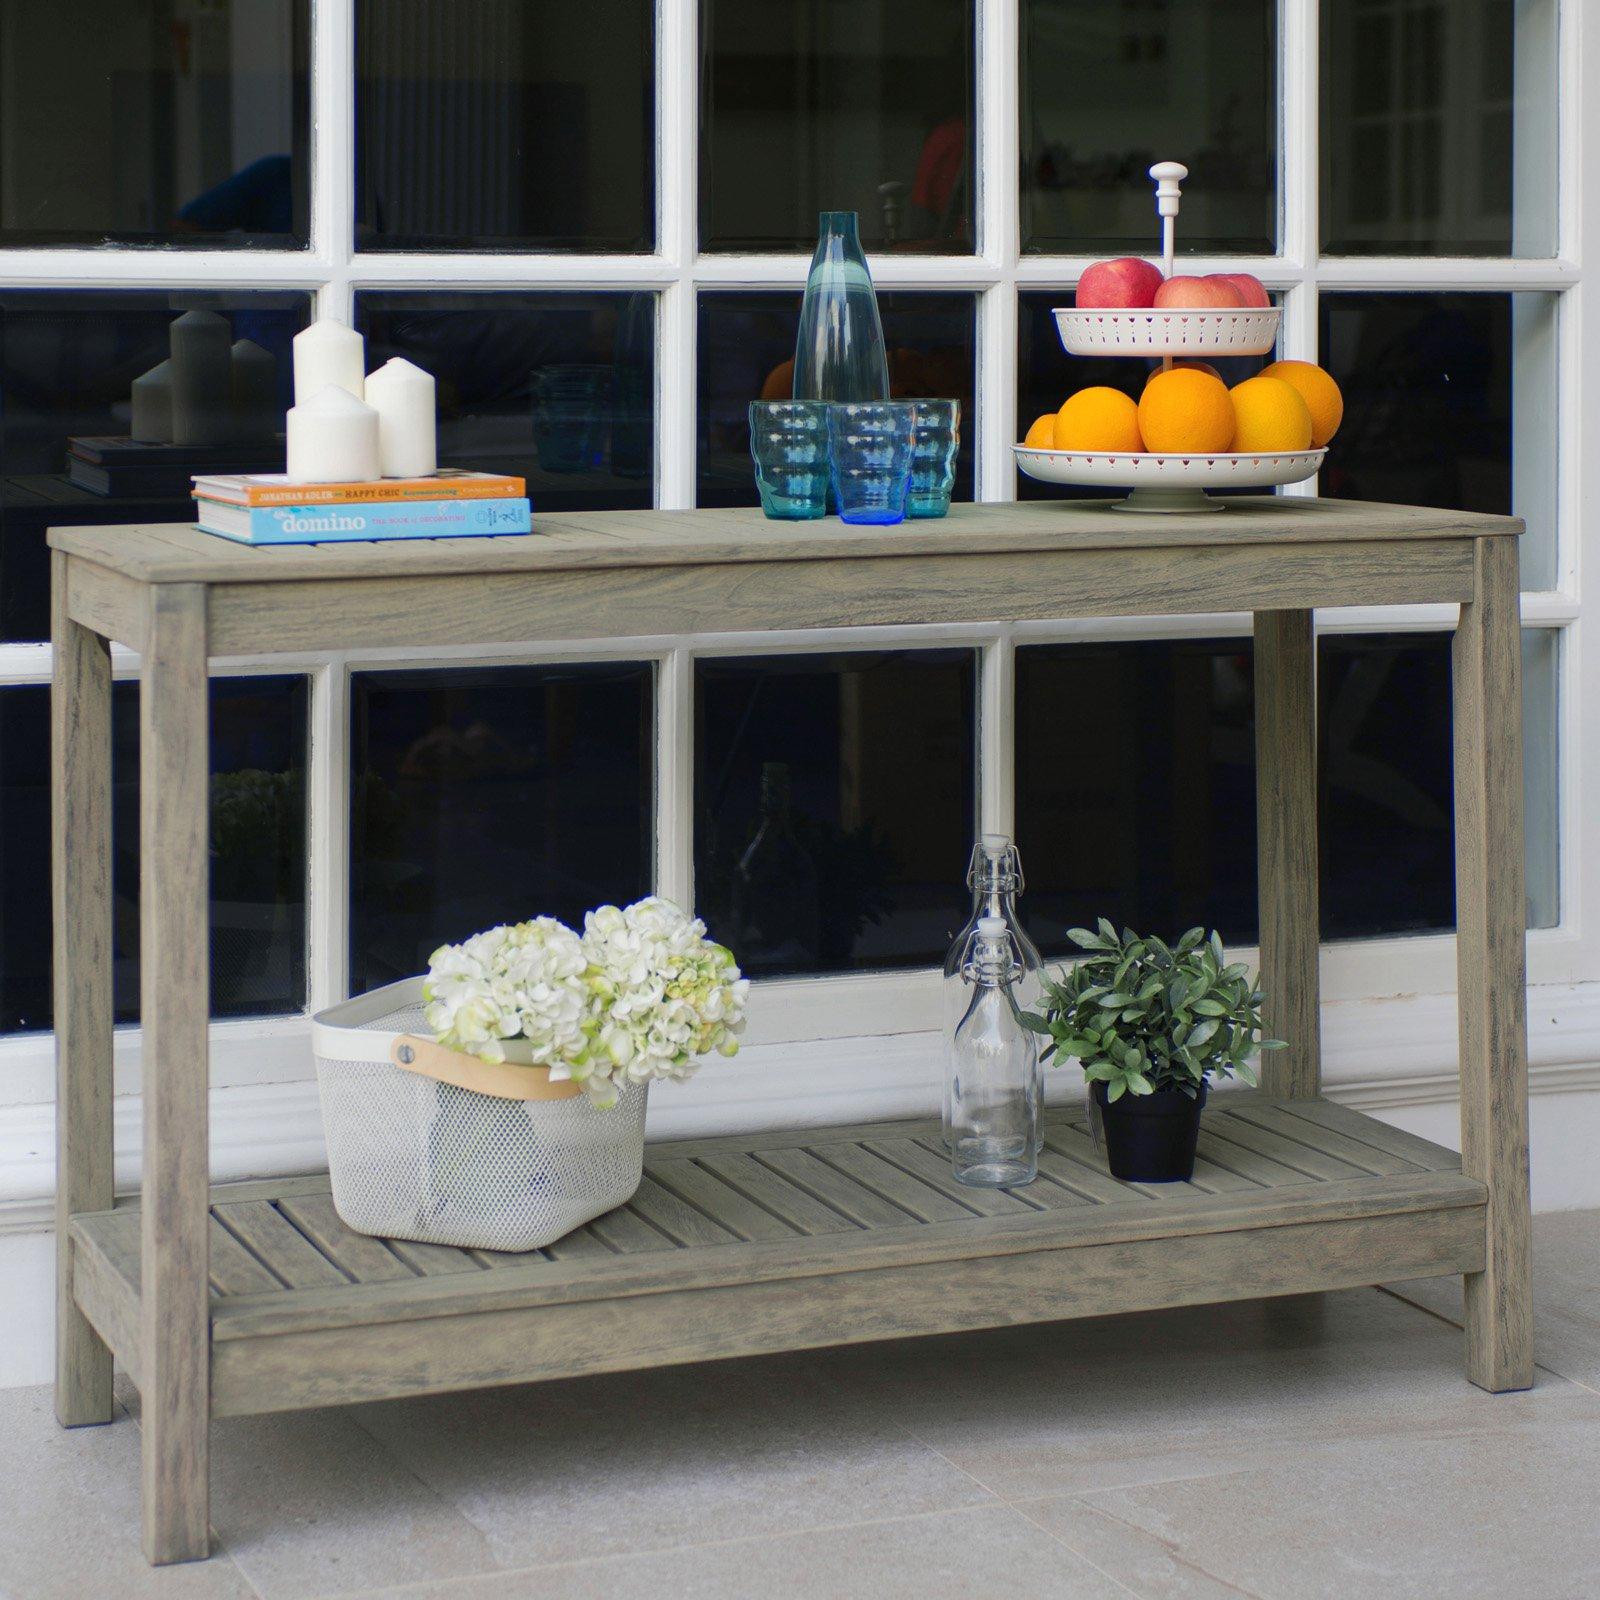 Cambridge Casual West Lake Patio Console Table